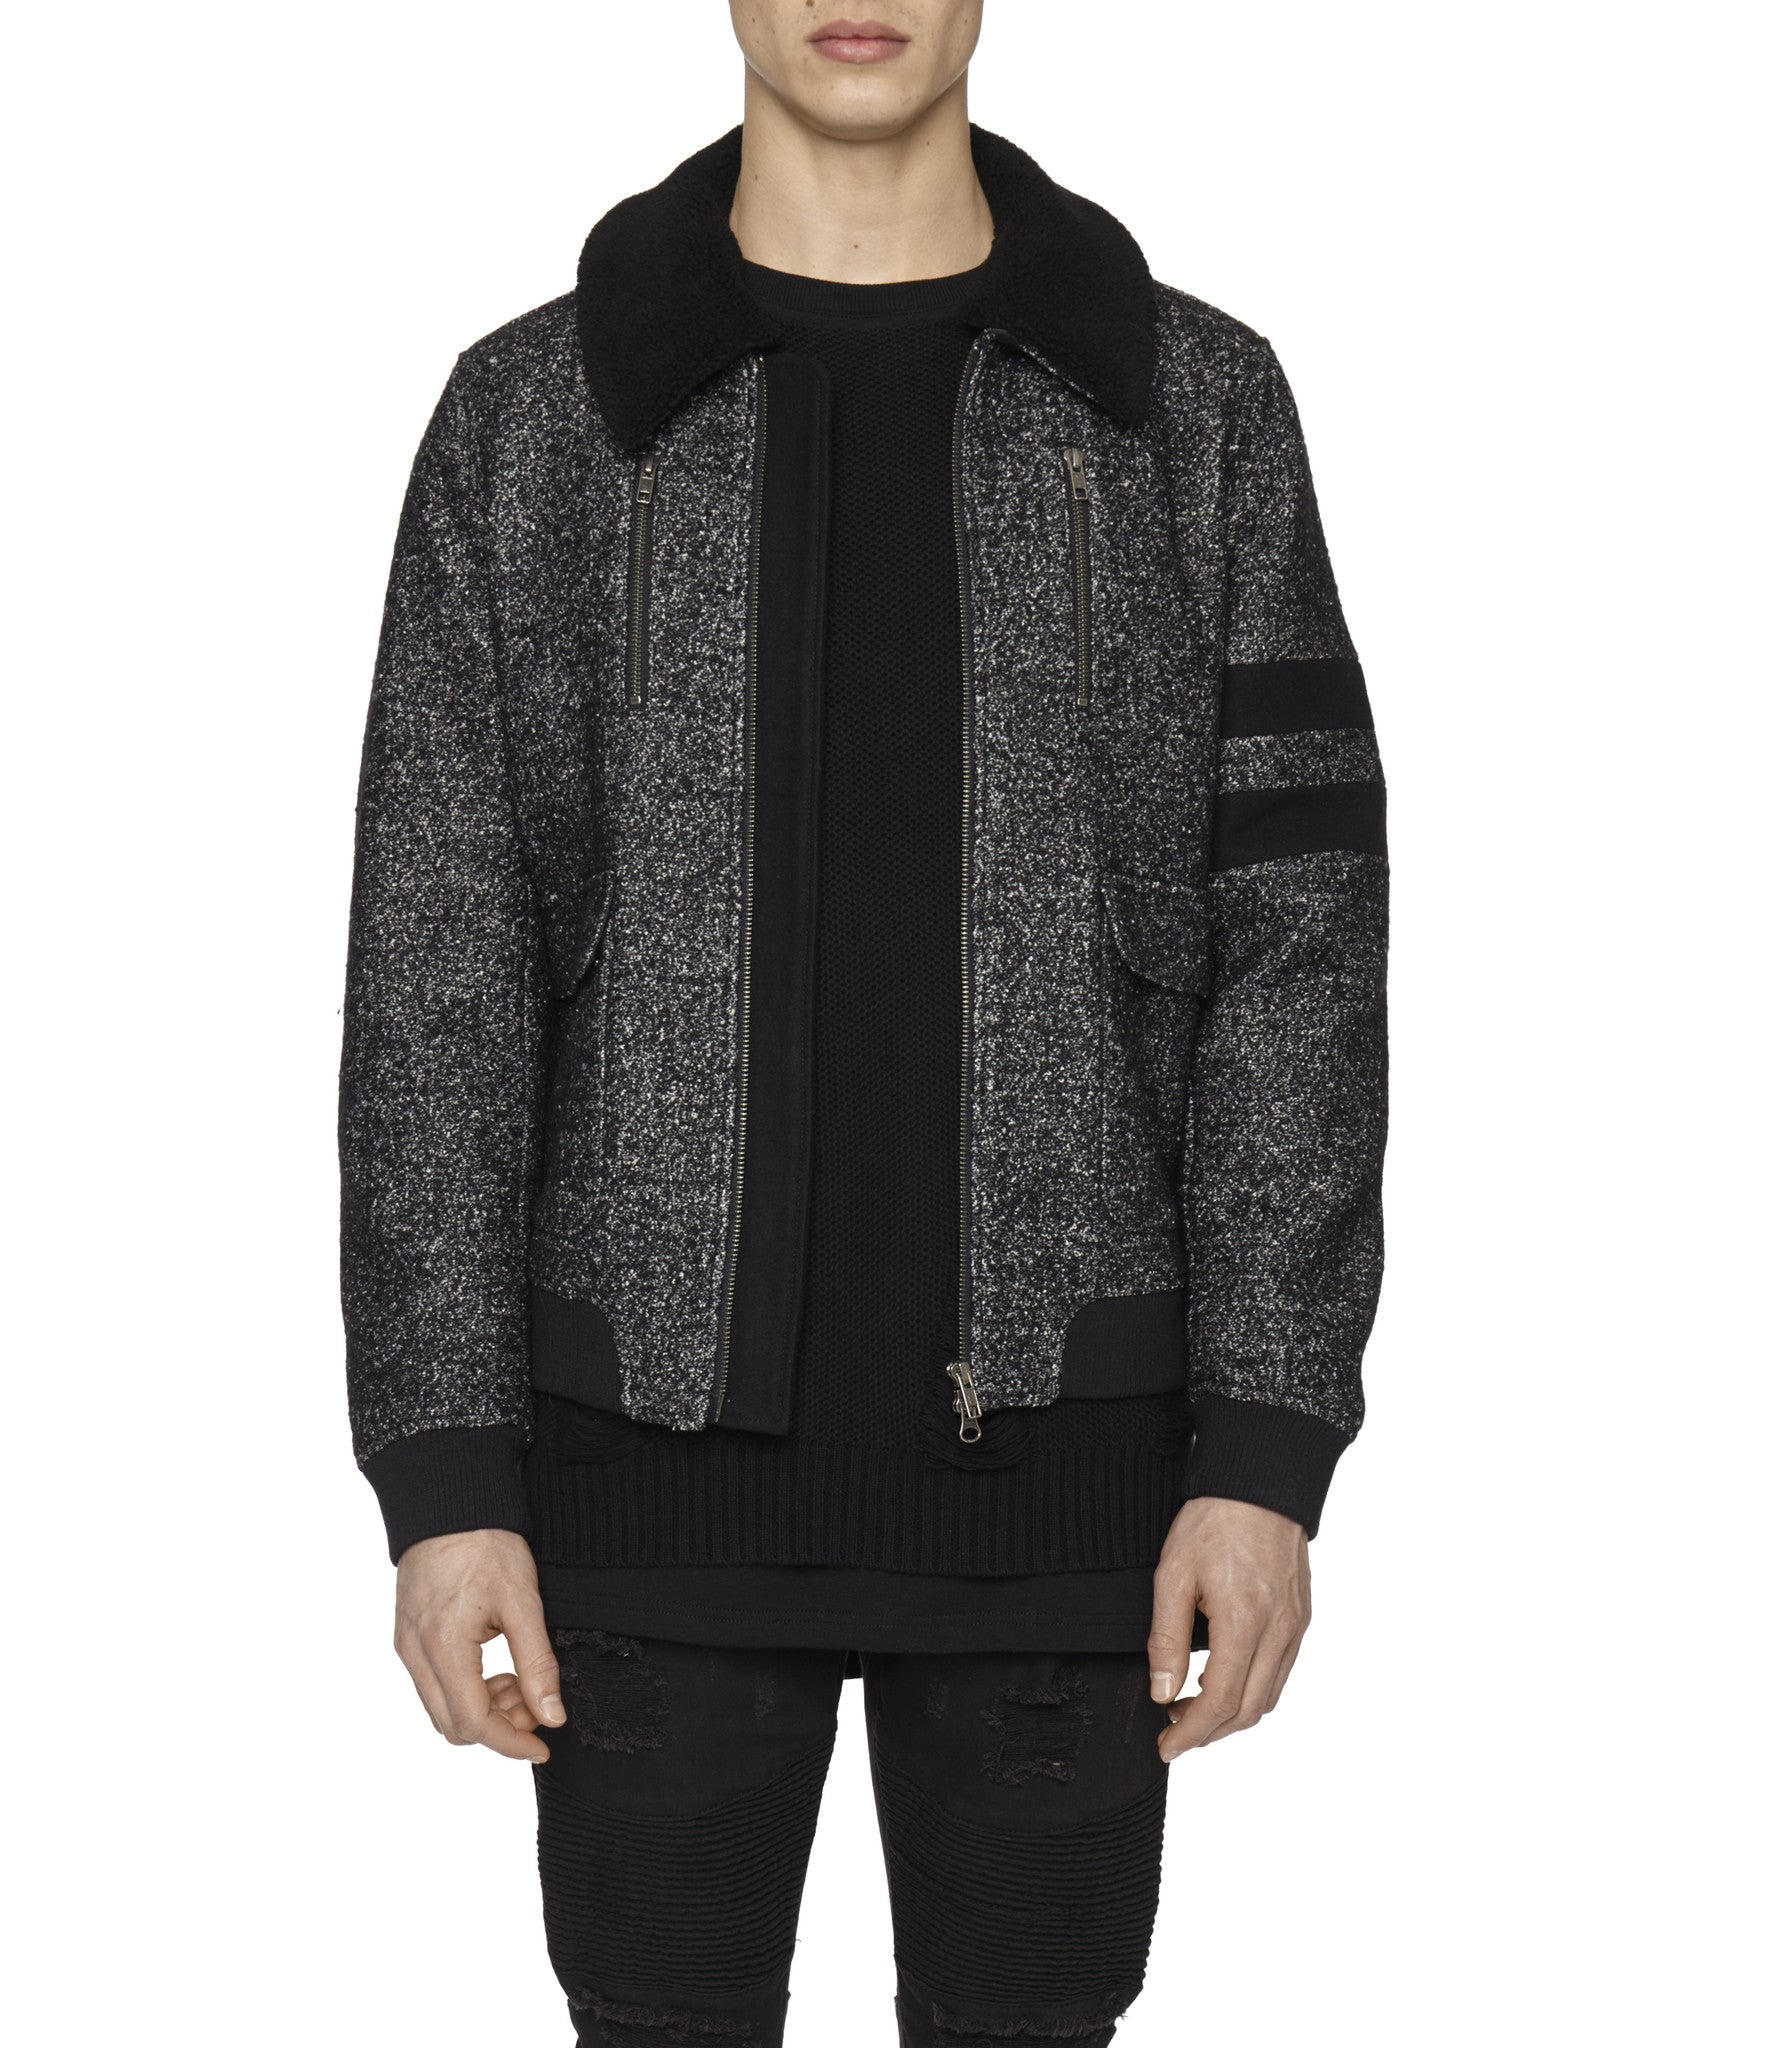 JK225 Shearling-Trimmed Mélange Wool Jacket - Black - underated london - underatedco - 1